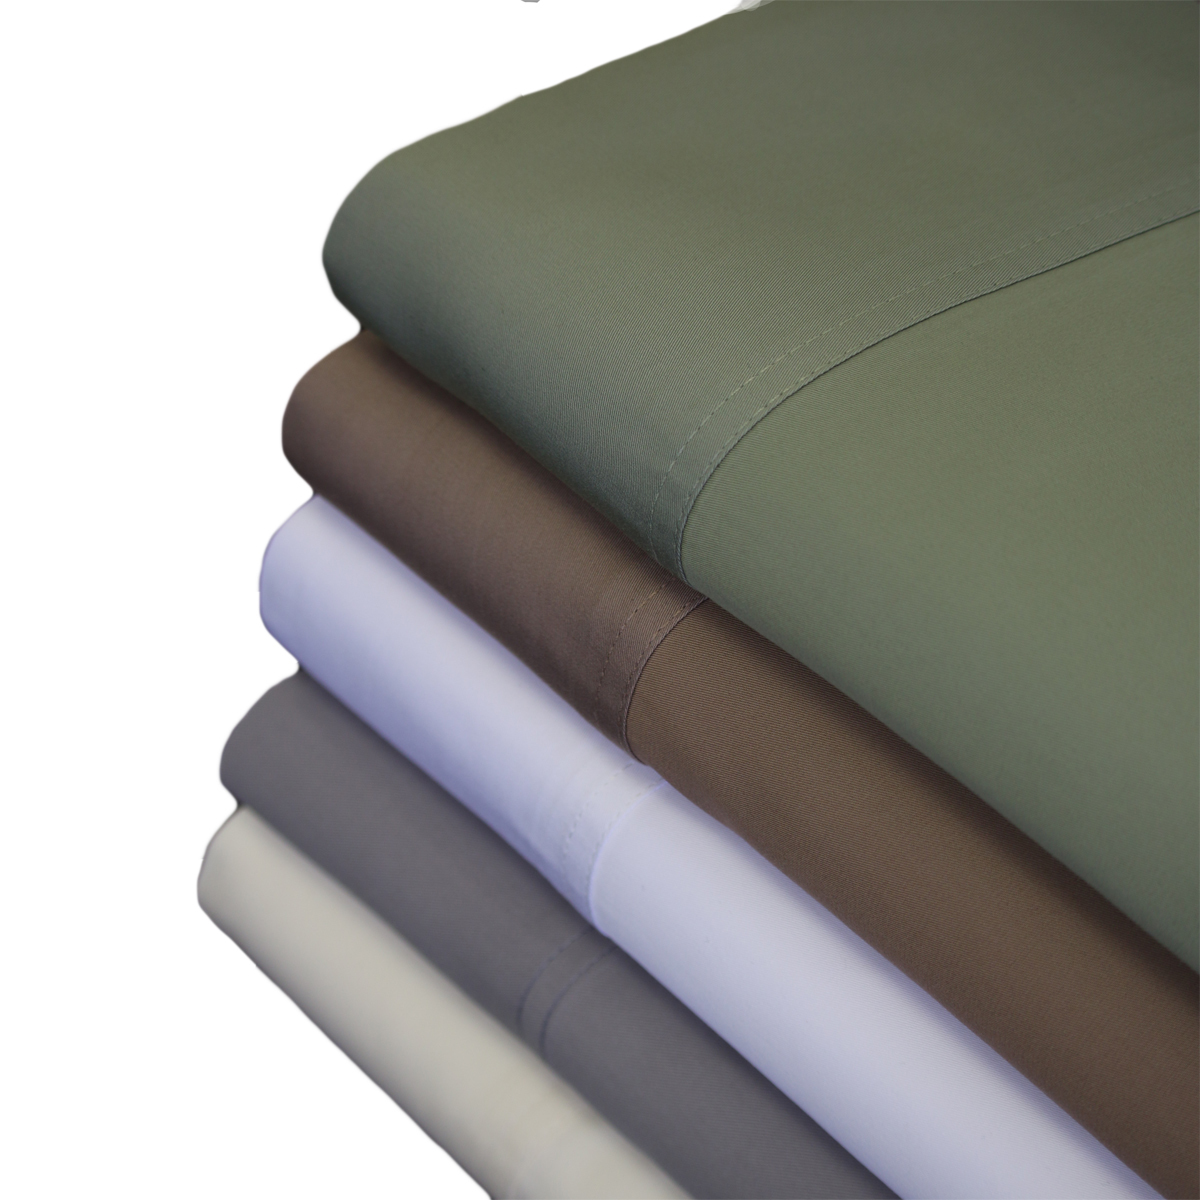 Abripedic. 600 Thread Count 100% Bamboo Viscose Sheet Set Collection by Abripedic. Are you comfort conscious? These 100% Bamboo viscose 600 Thread Count Sheet Set is an impeccable choice. These 100% bamboo viscose sheets are acknowledged for their natural softness, durability, and breathability. These sheets are cool and welcoming every night of the week. Experience our superior bamboo viscose sheets for yourself, and see what we mean. They come in 5 soft and soothing colors and make every bed in your home a bamboo viscose one. Machine wash in cold water.Delicate cycle with mild detergent. No Bleach. Tumble Dry on low heat. Remove immediately at end of cycle. Press with warm iron if needed. Do not use hot water.